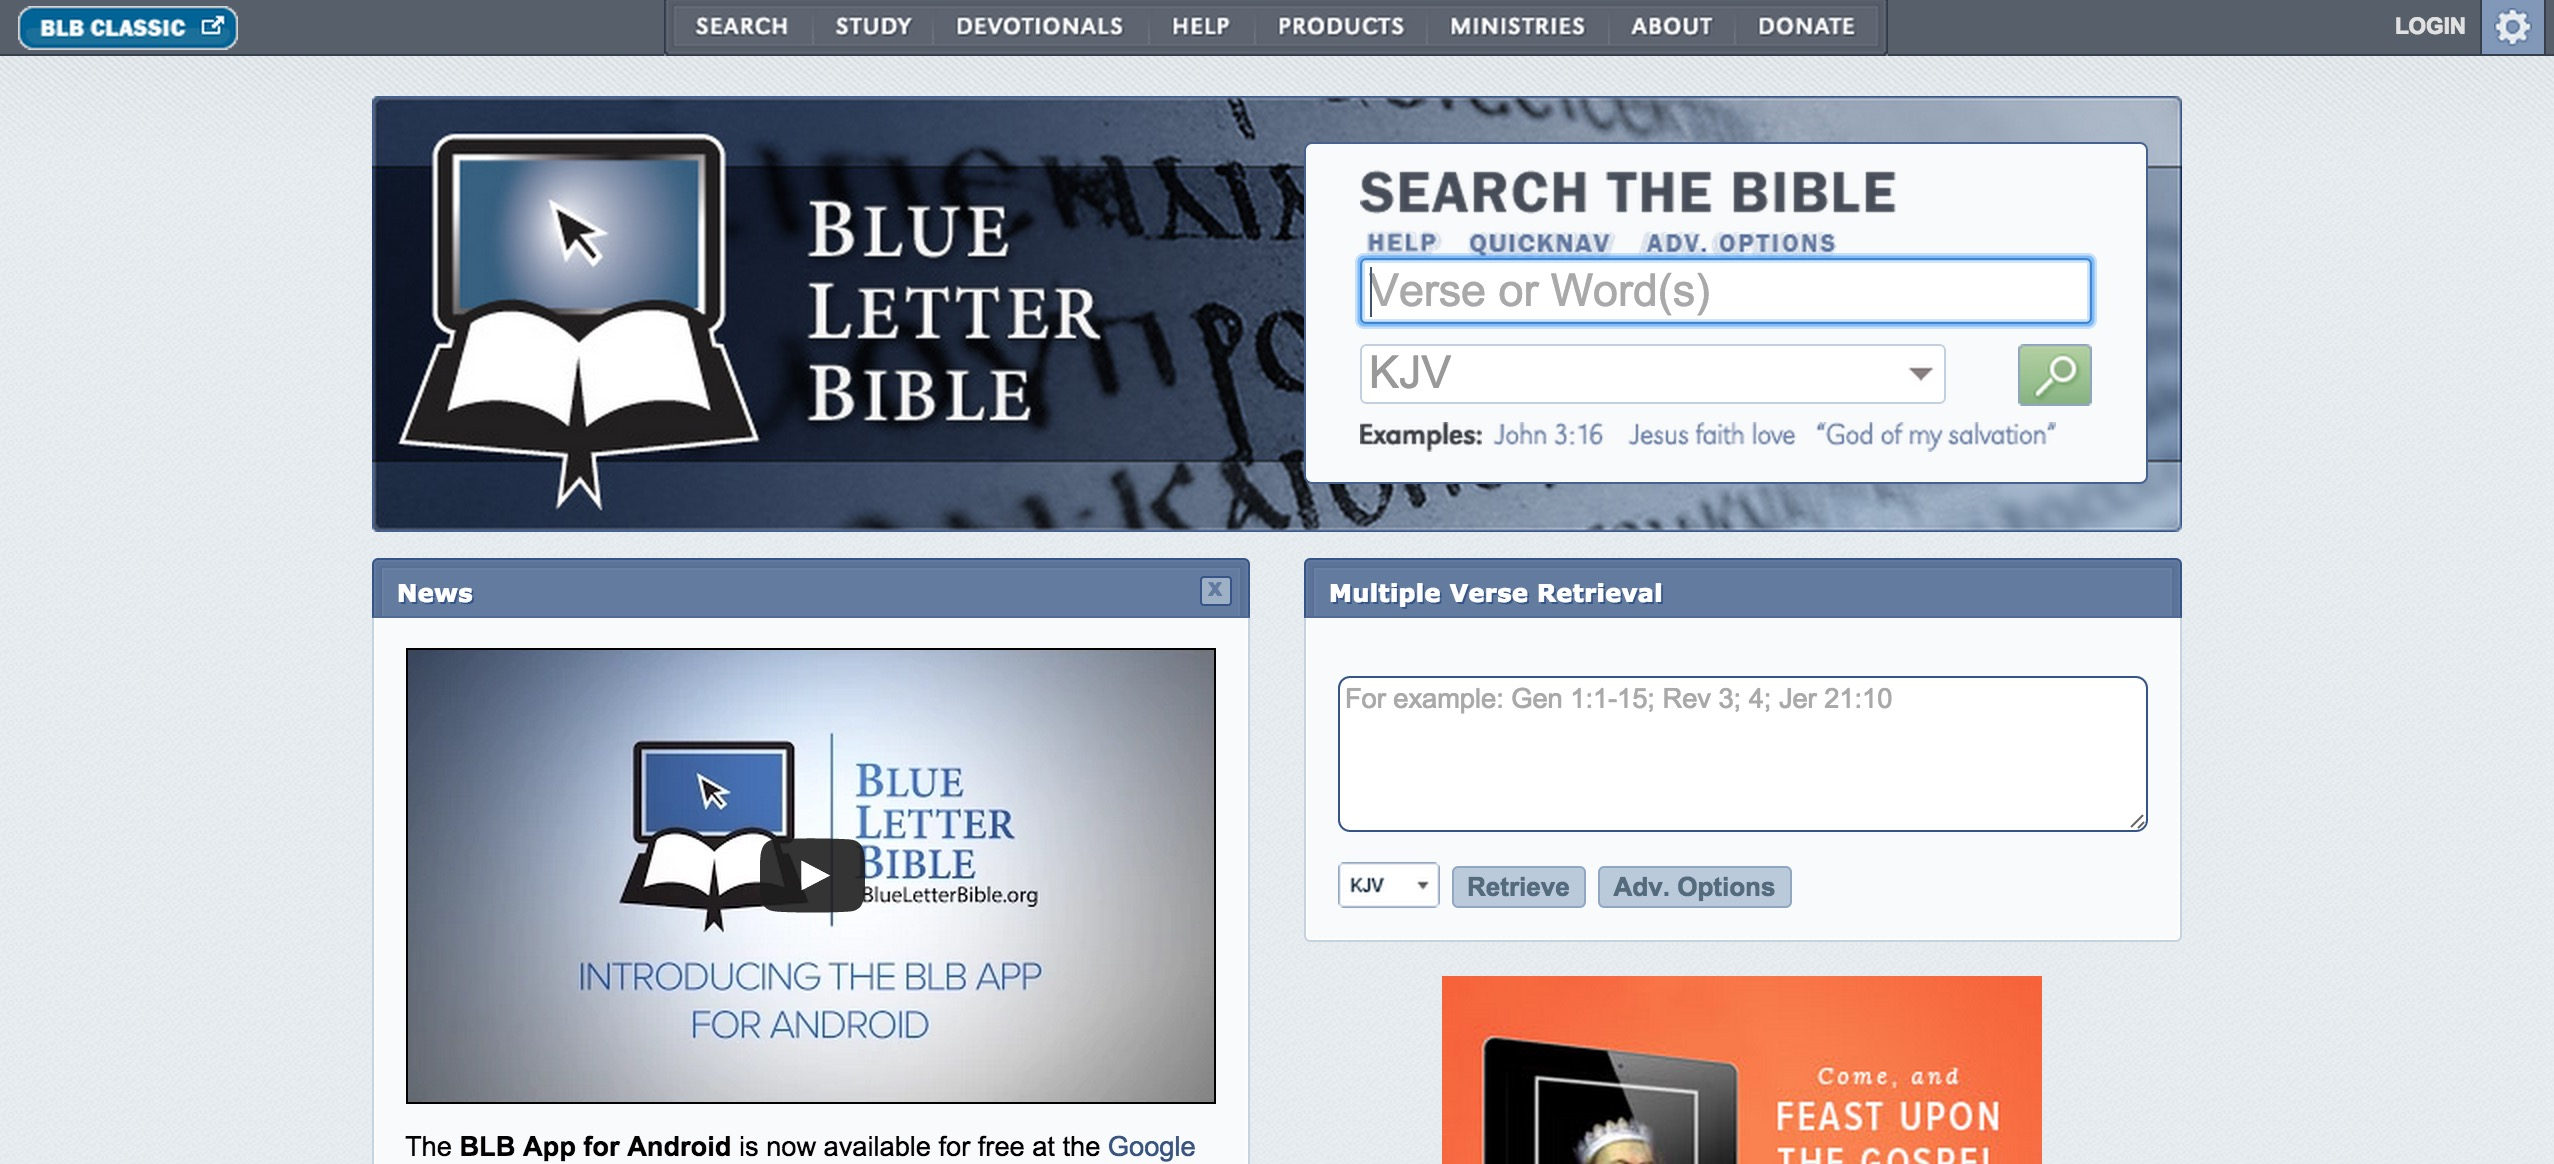 blue letter bible commentary blue letter bible archives kevinpurcell amp theotek 1097